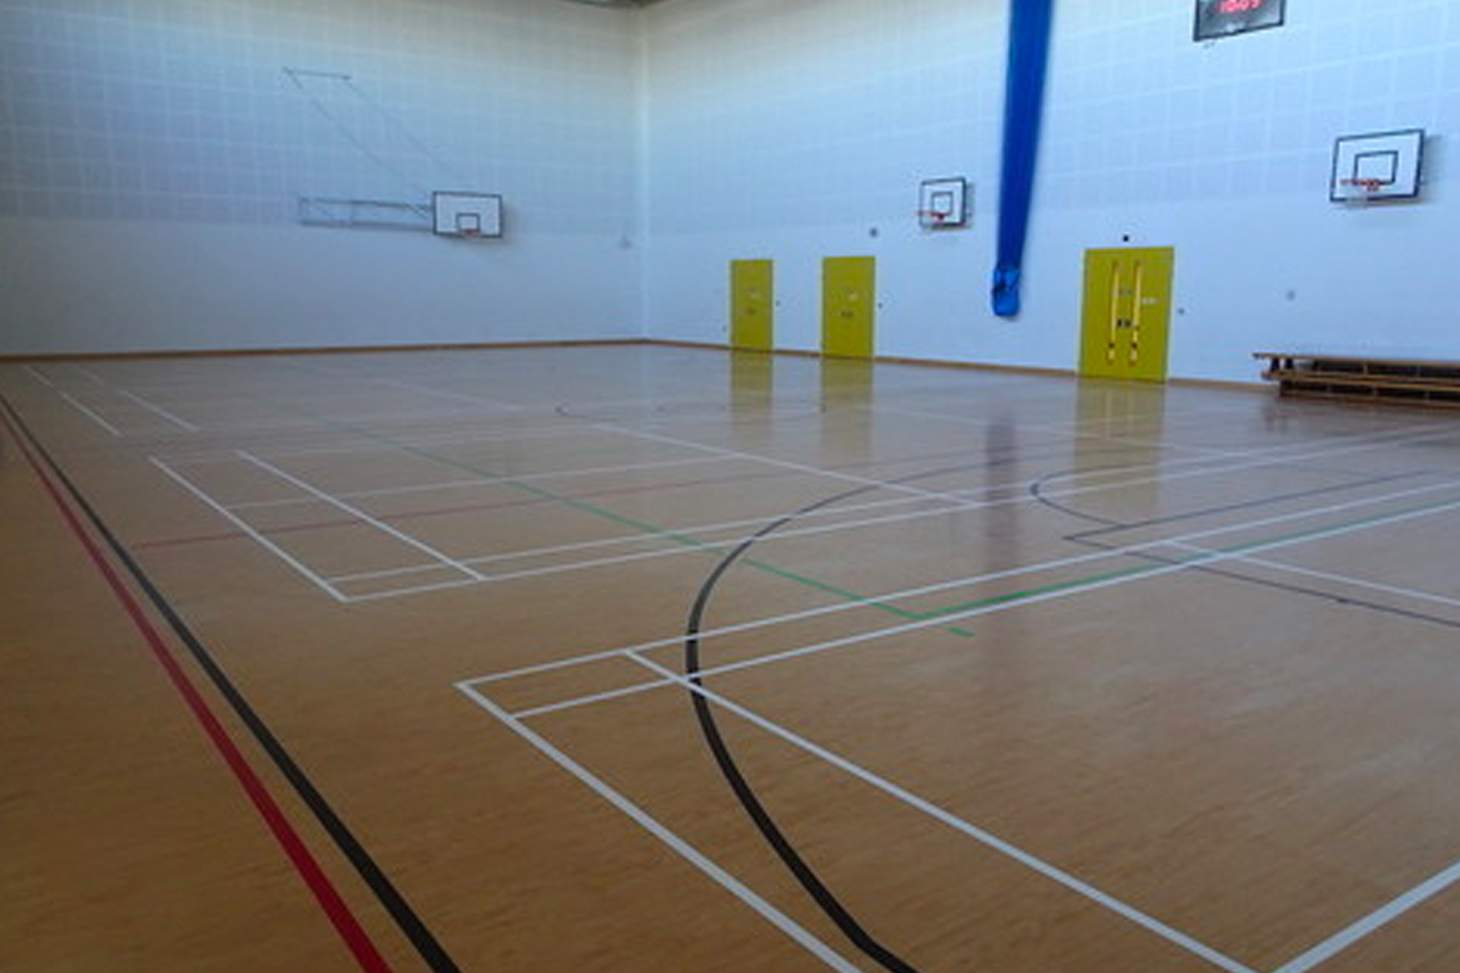 Our Lady's Convent High School Court | Sports hall badminton court